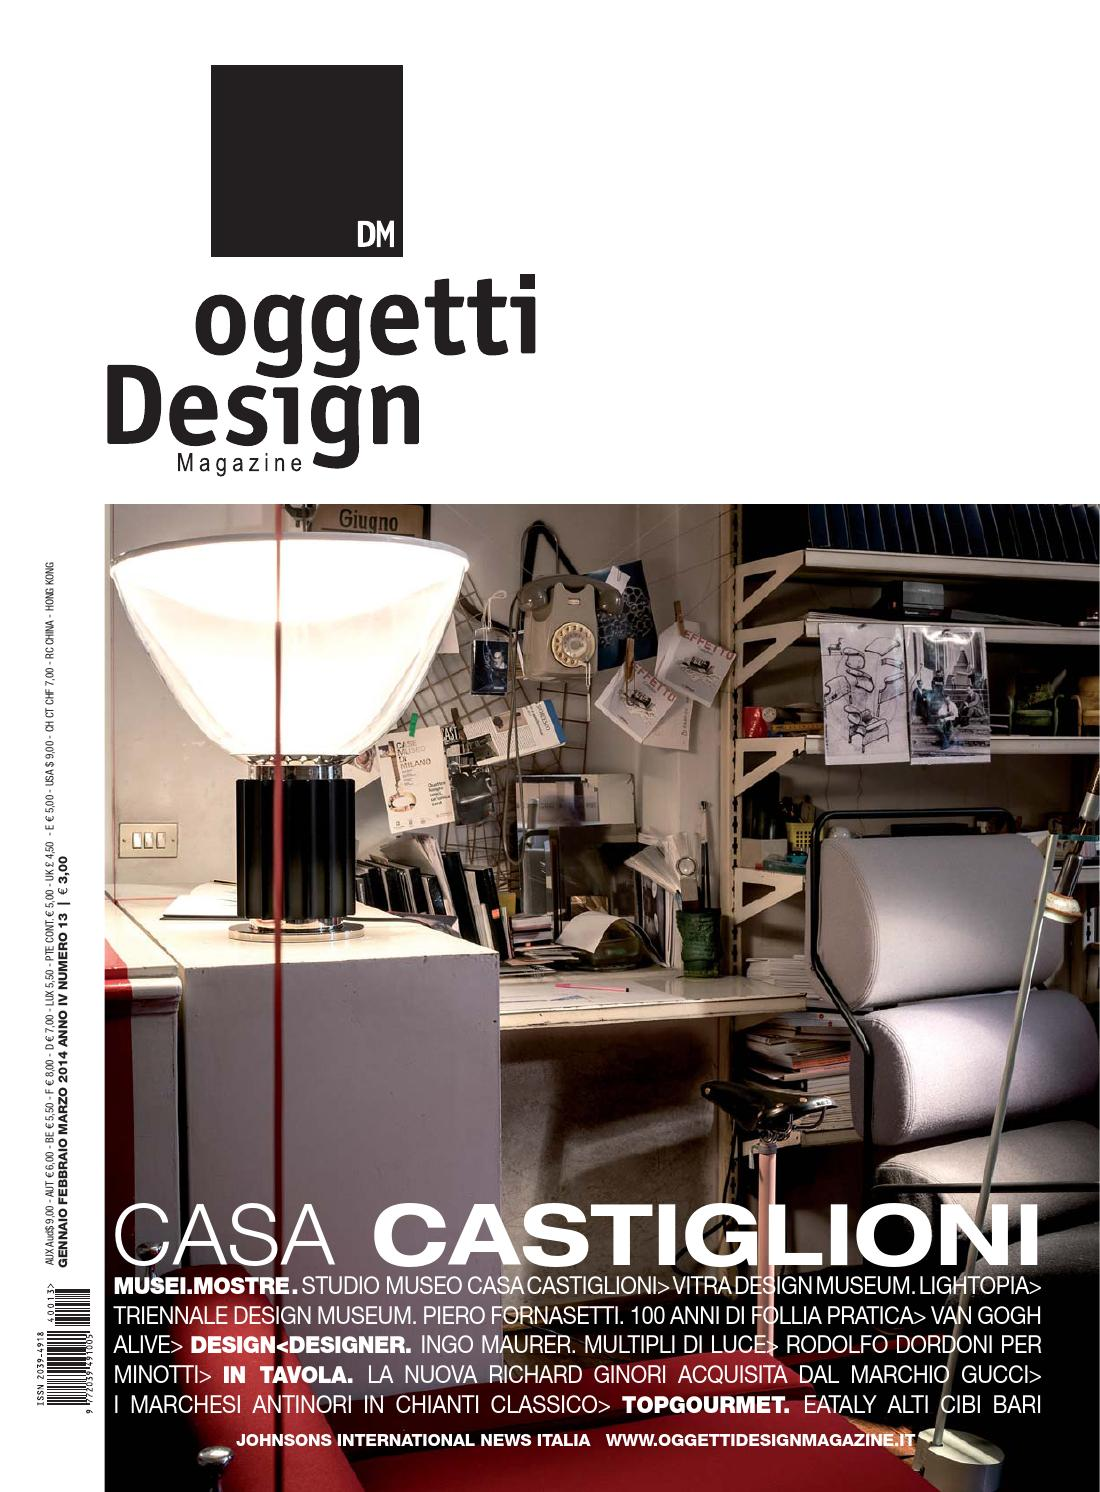 Dm oggetti design magazine by johnson web for Oggetti design